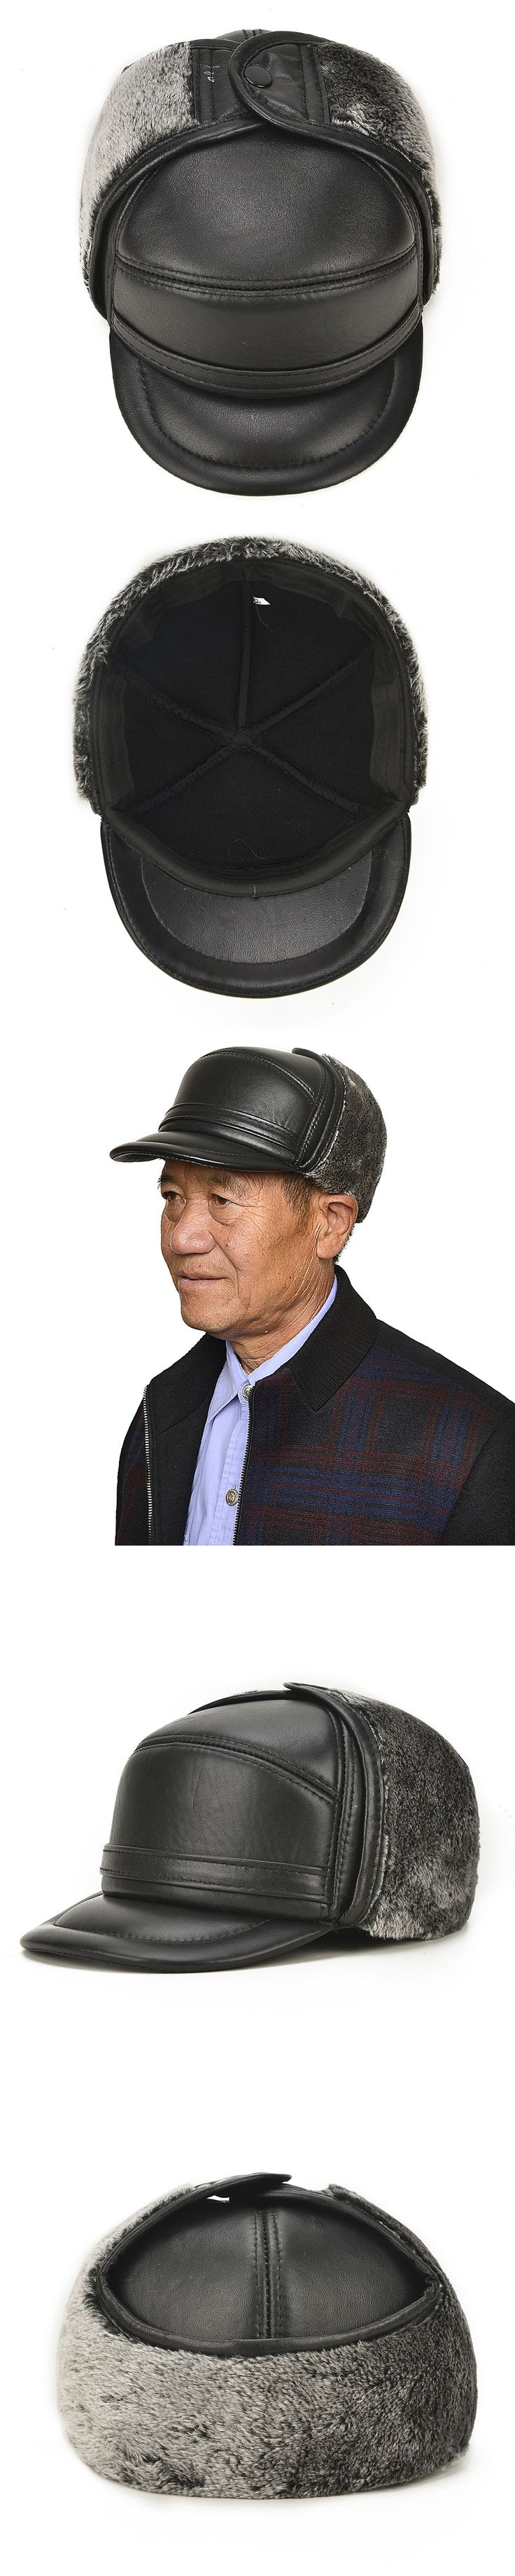 New Arrival Winter Warm Hat Elderly Ear Protection Cap  Adult Lei Feng Leather  Father Sheepskin Hat Hickening Warm Hat B-7154